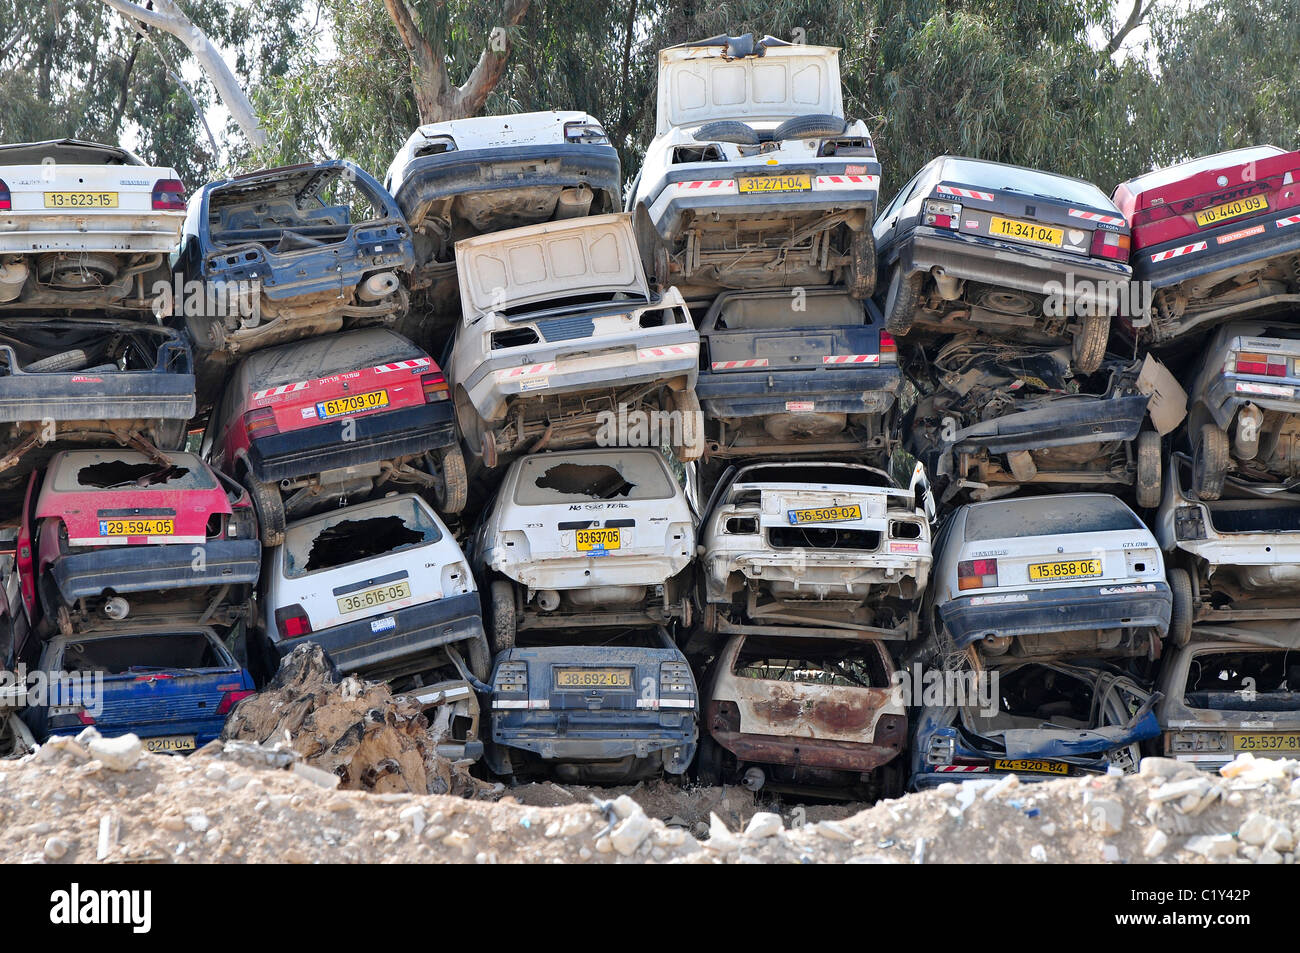 Car scrapyard. Cars piled up in a scrapyard. Photographed in Beer ...